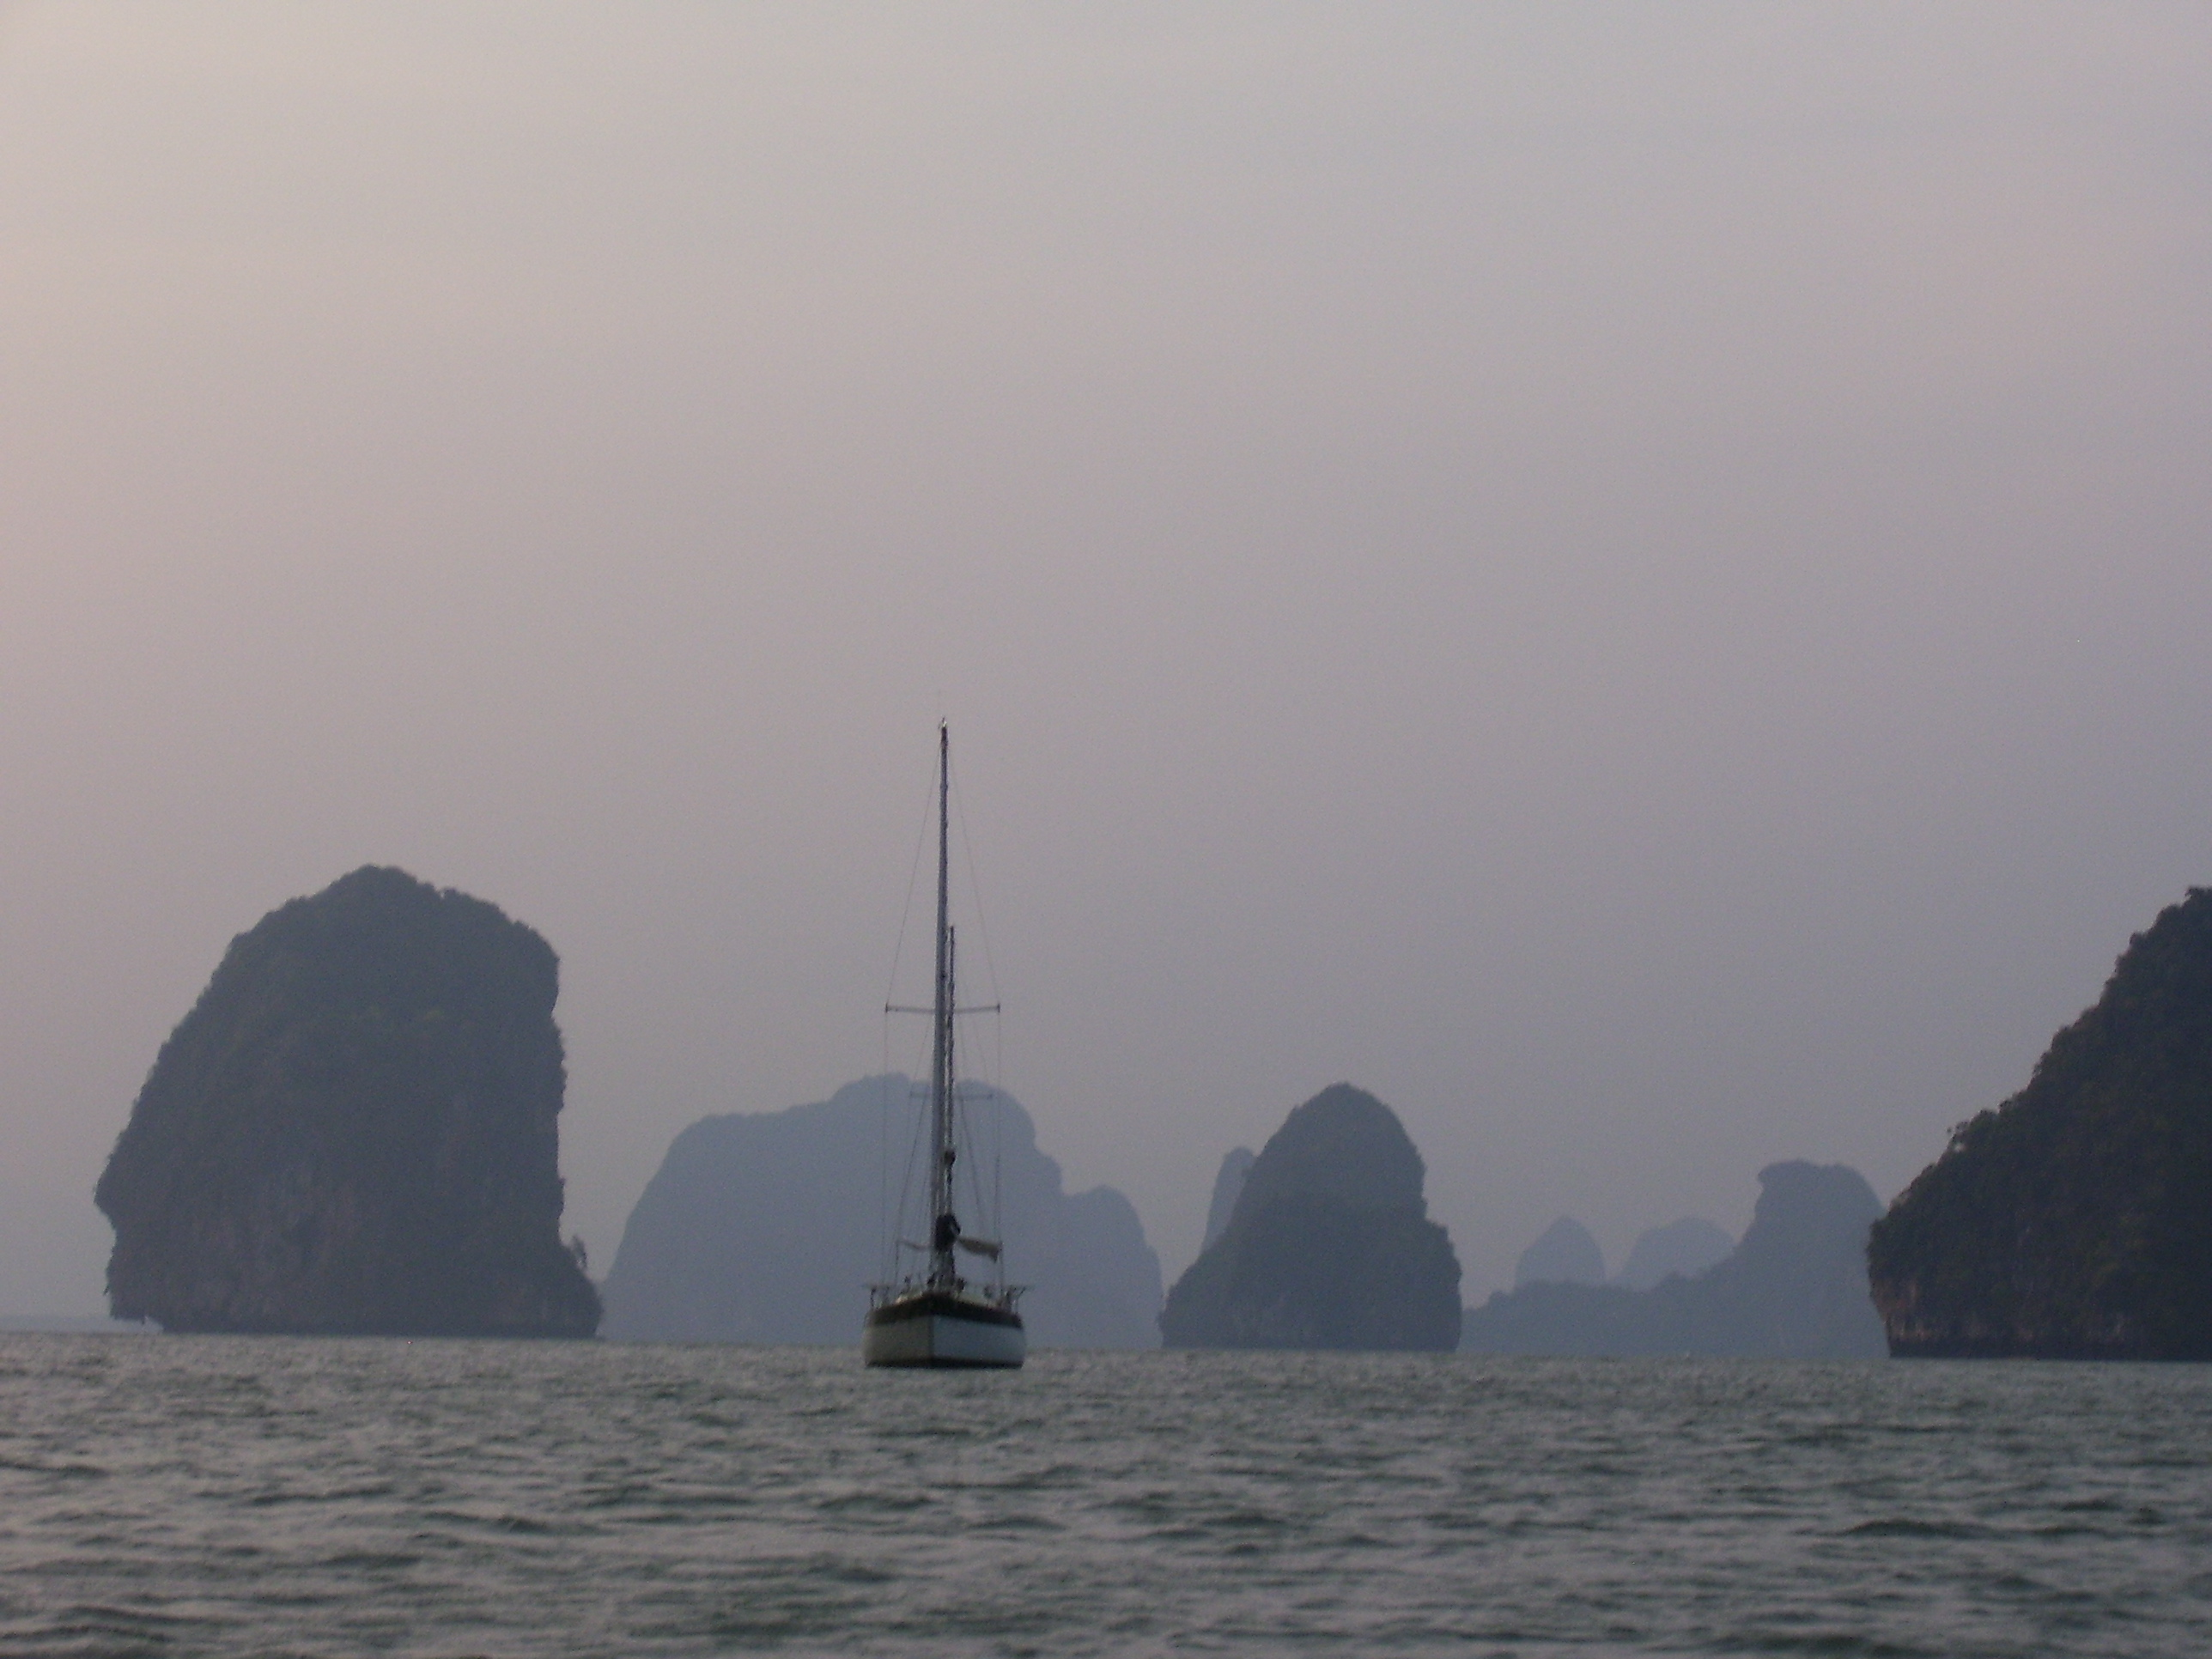 Yana de Lys anchored in Phang Nga Bay. It only took 20+ years for the first of my sailing trips to happen.